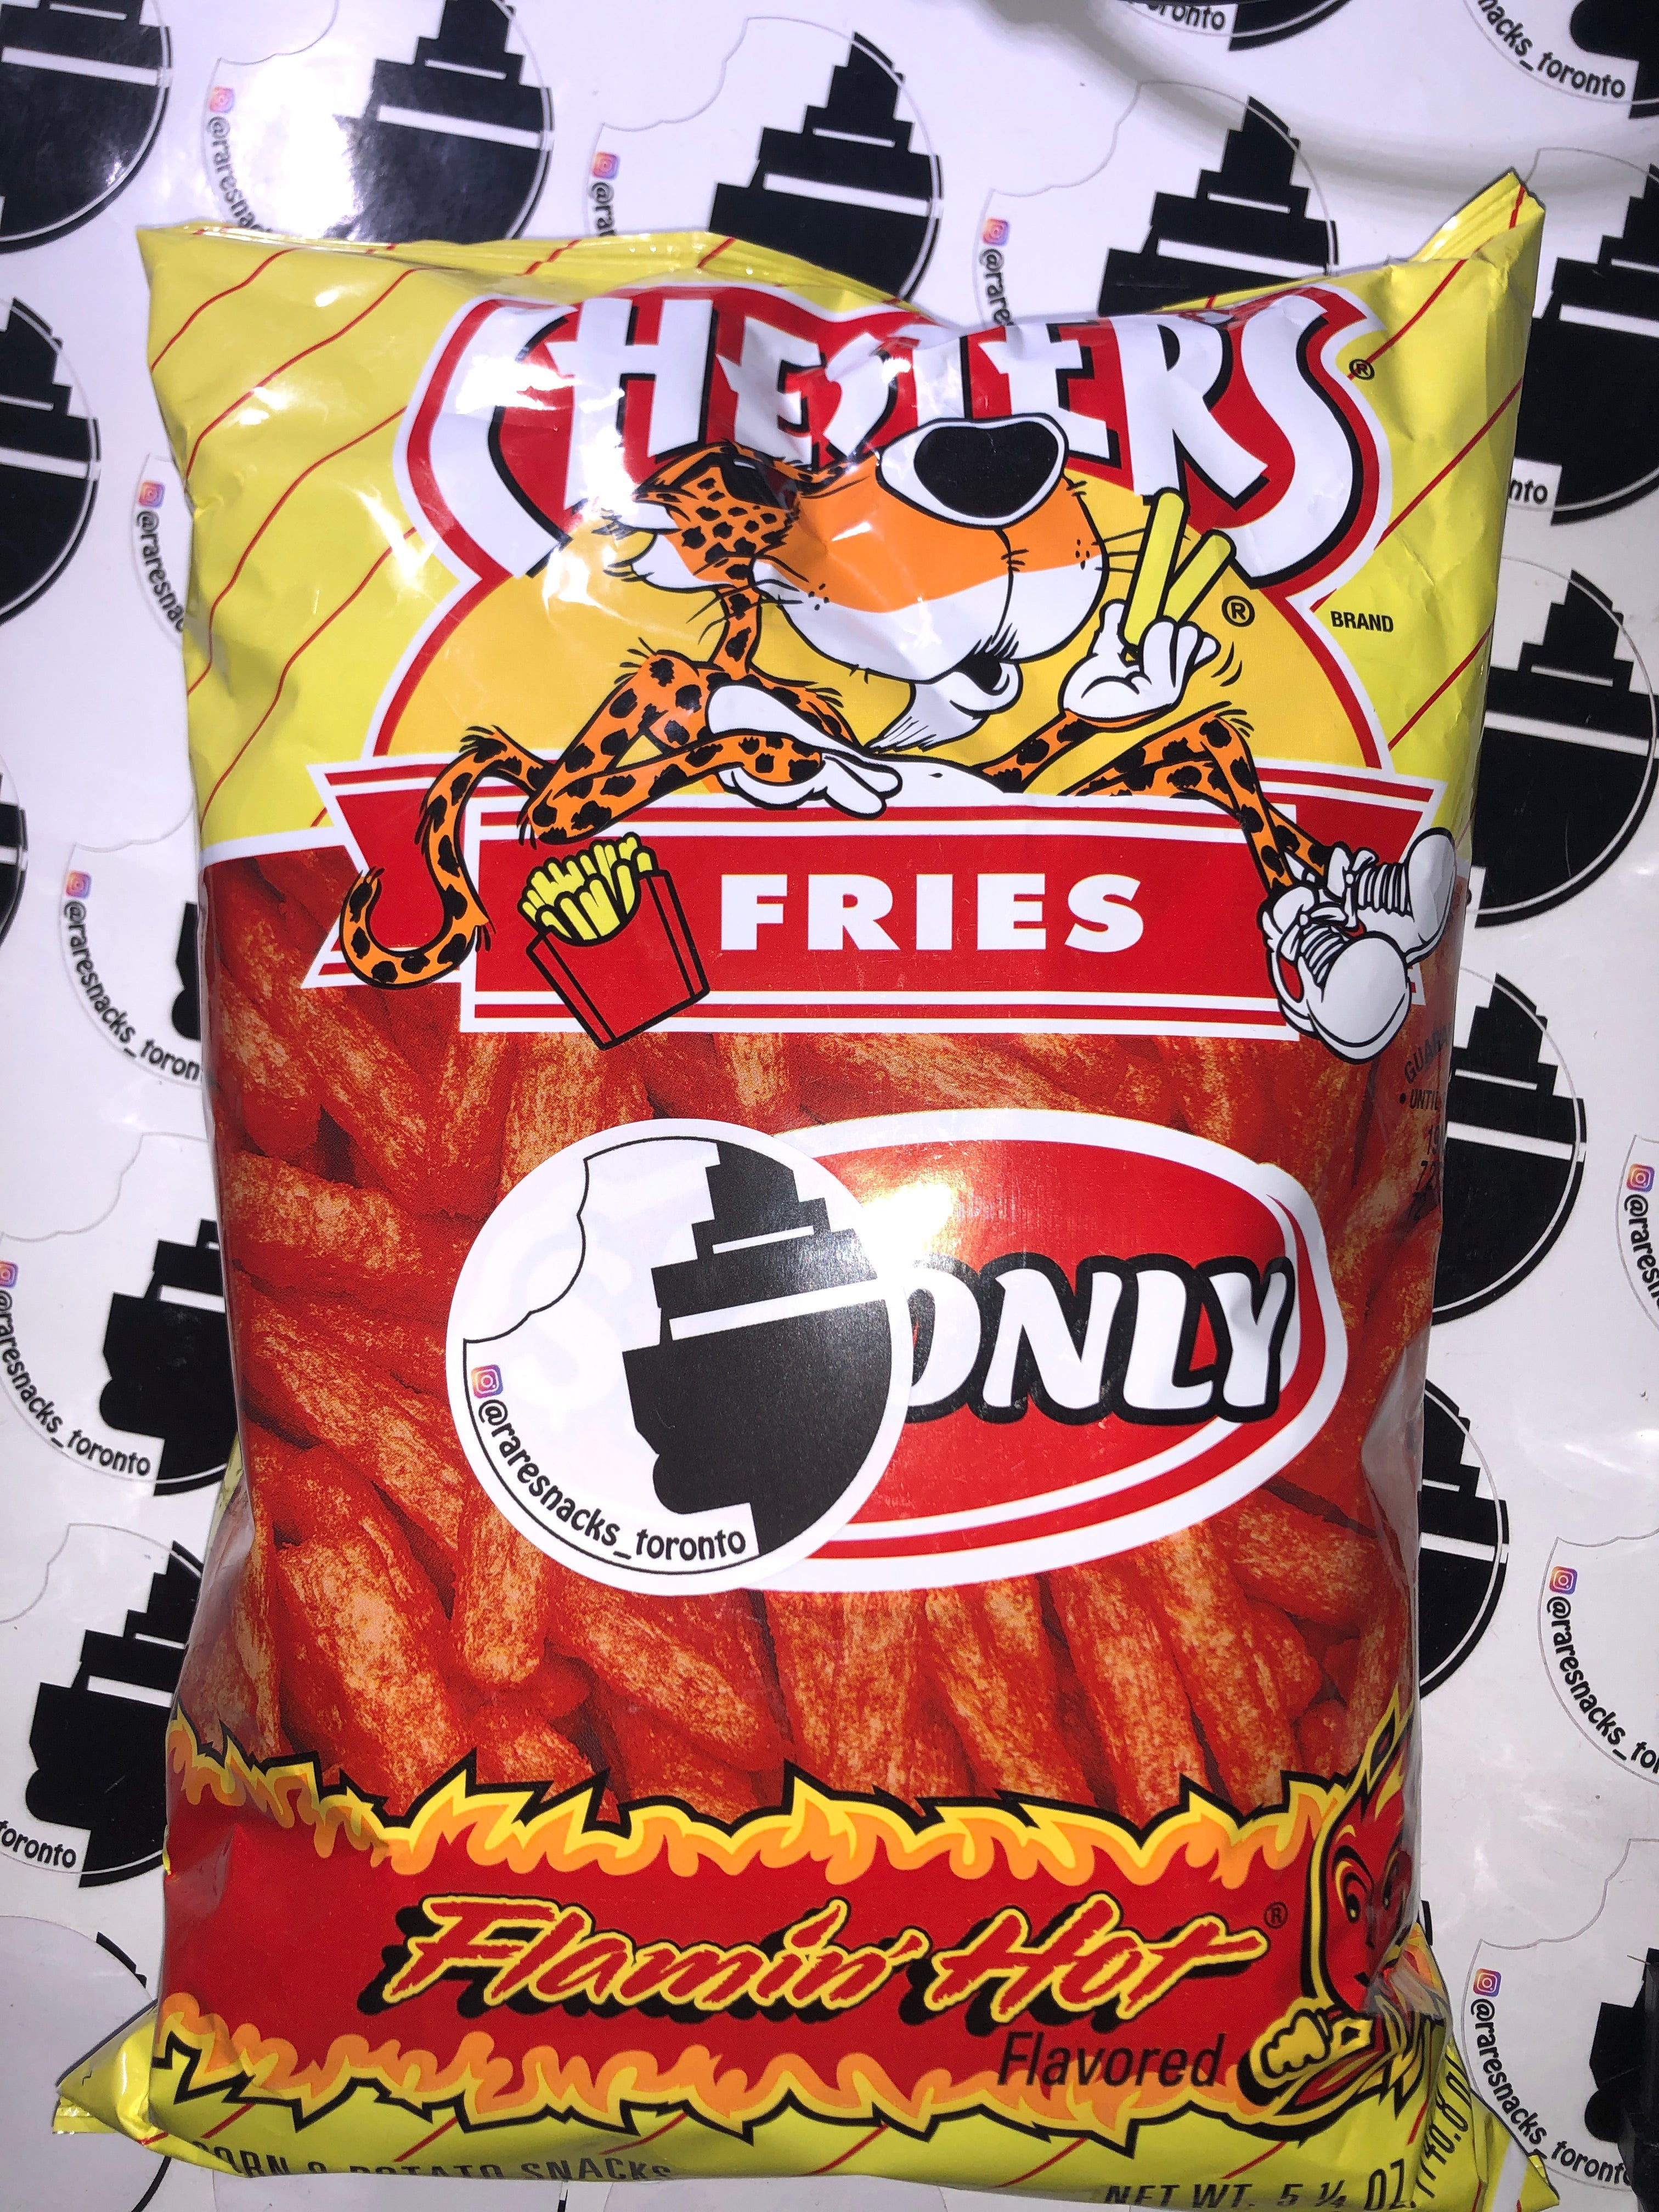 Chester's Flaming Hot Fries